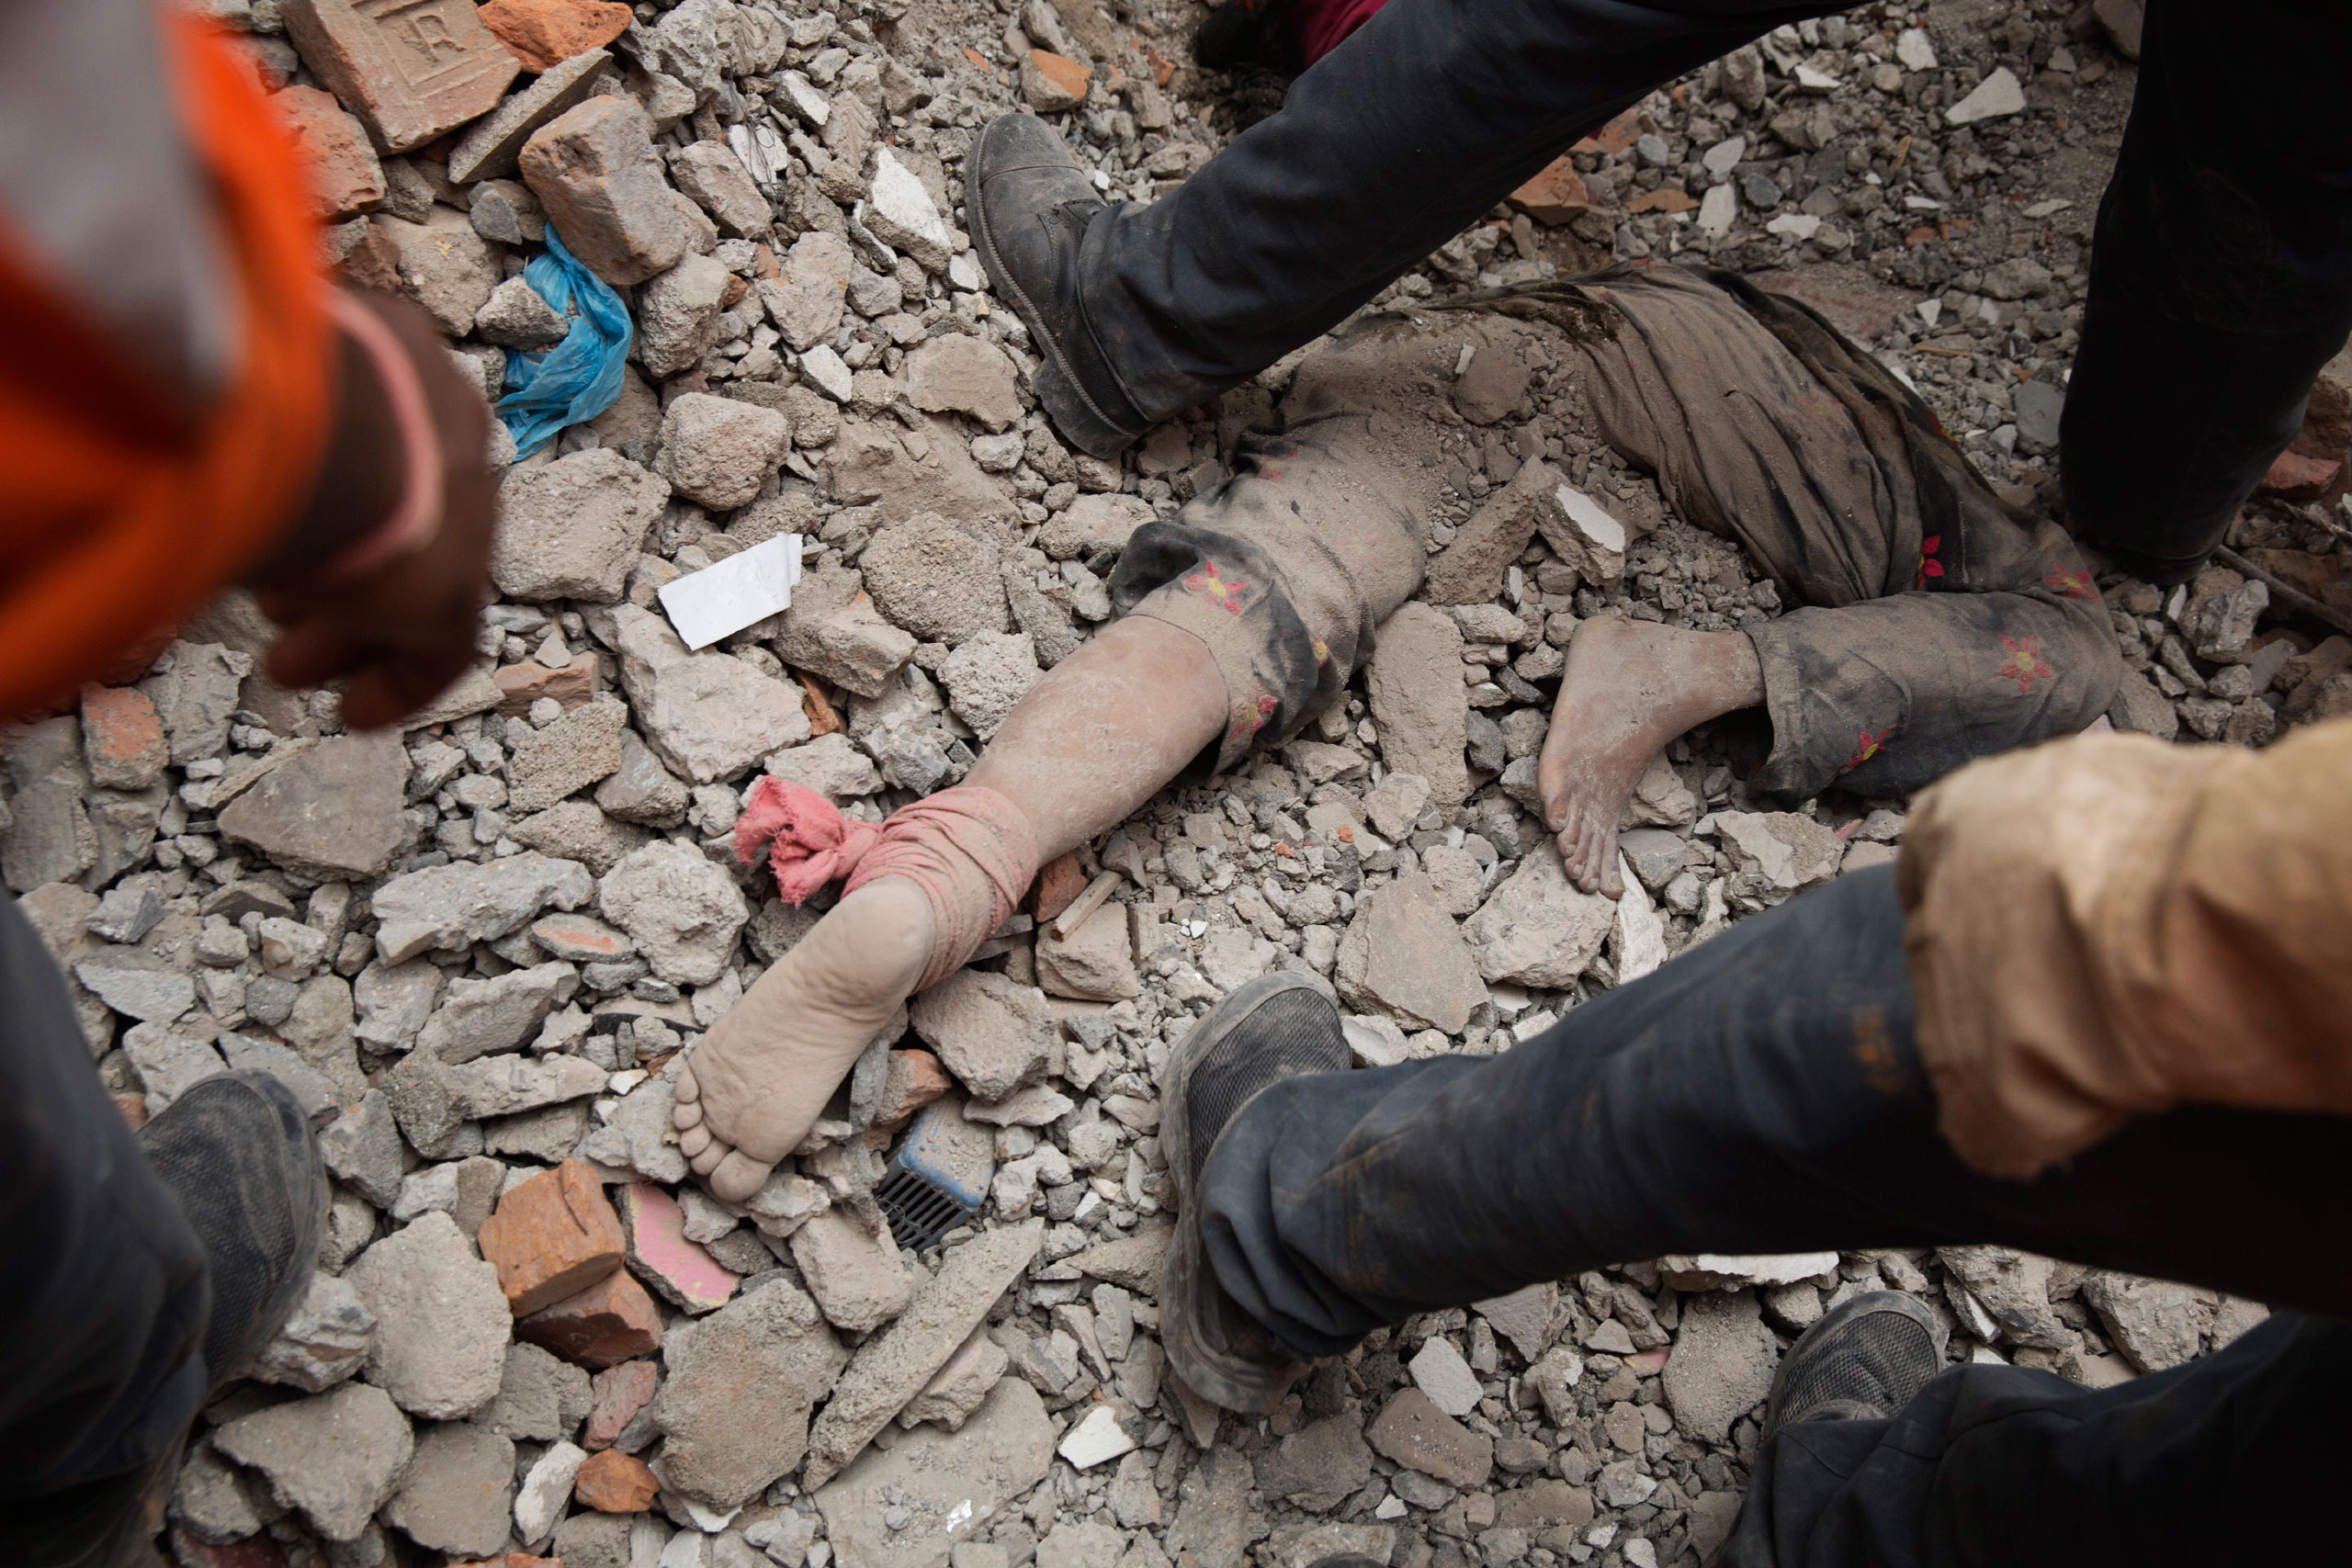 Indian and Nepalese forces excavate a body from collapsed apartments in Kathmandu, April 27, 2015.